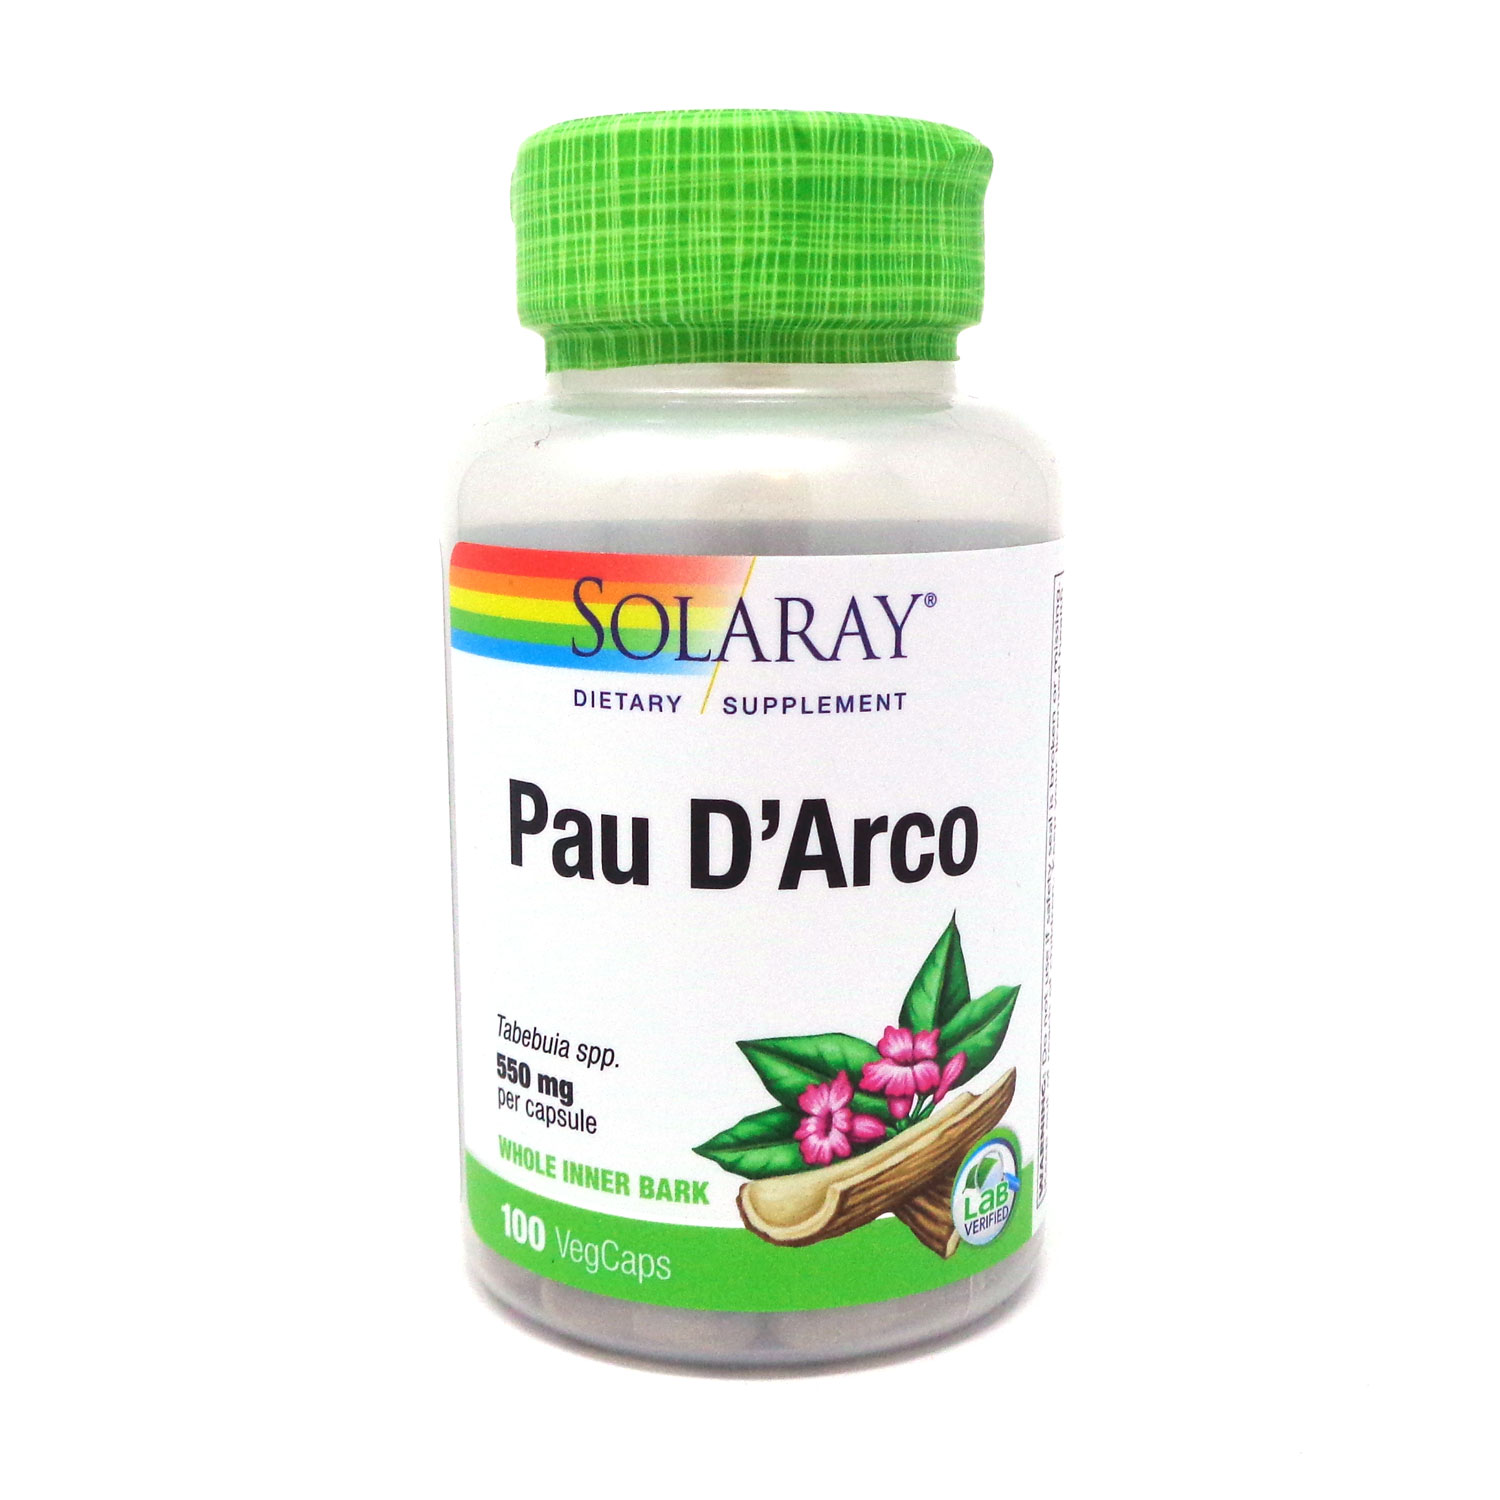 Pau D'arco Yeast Infection Pill